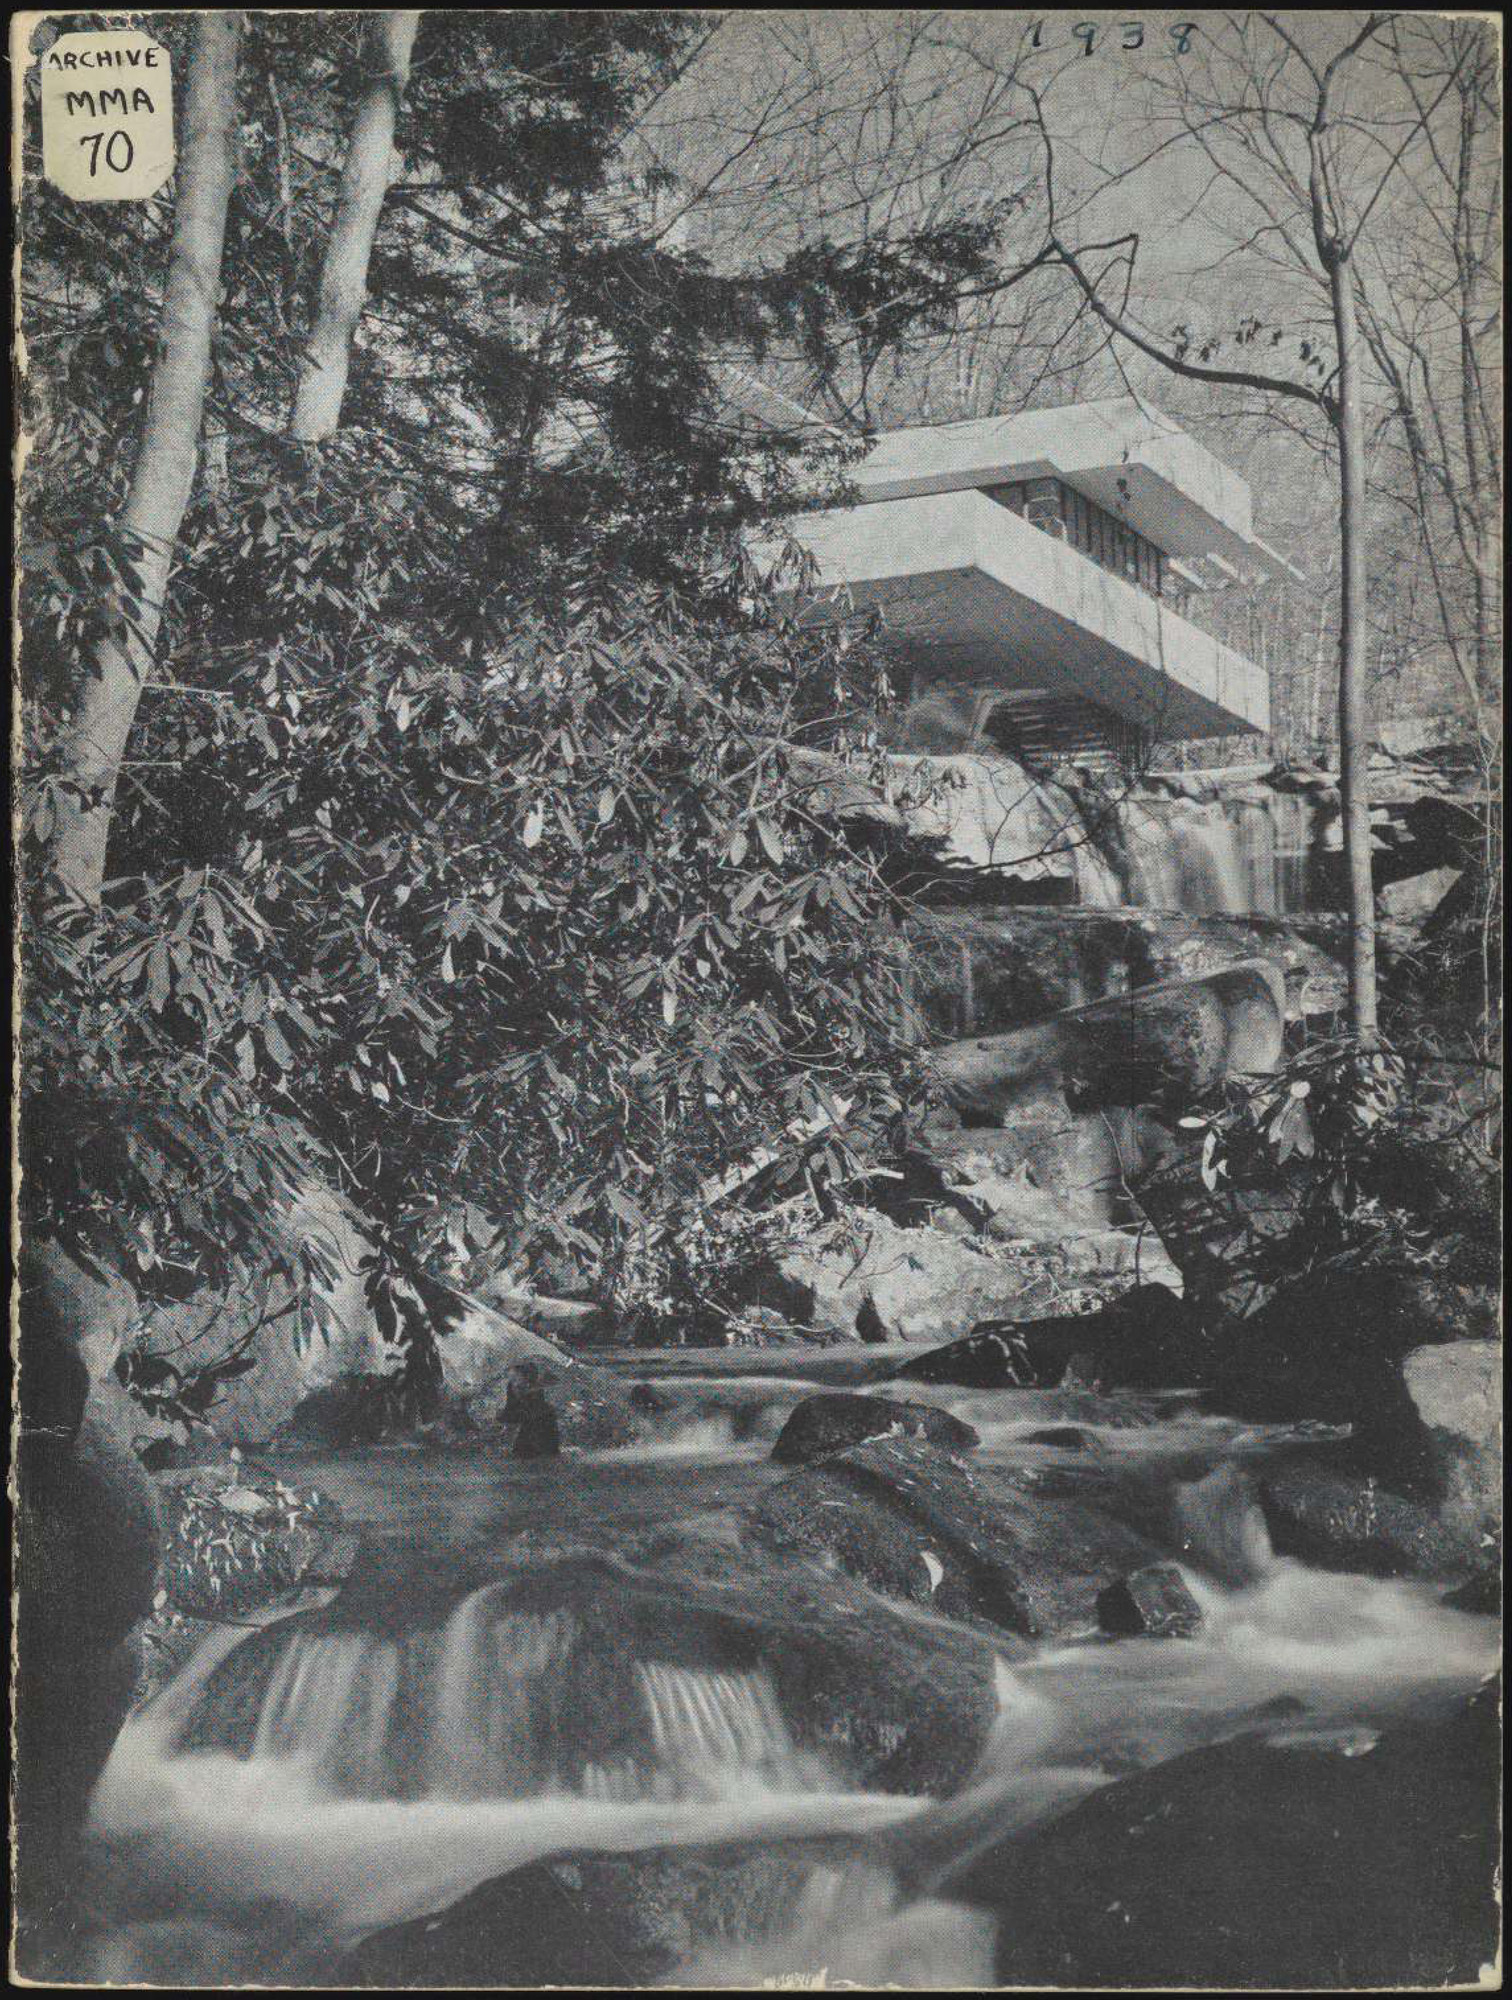 Cover of A new house by Frank Lloyd Wright on Bear Run, Pennsylvania (New York: The Museum of Modern Art, 1938)